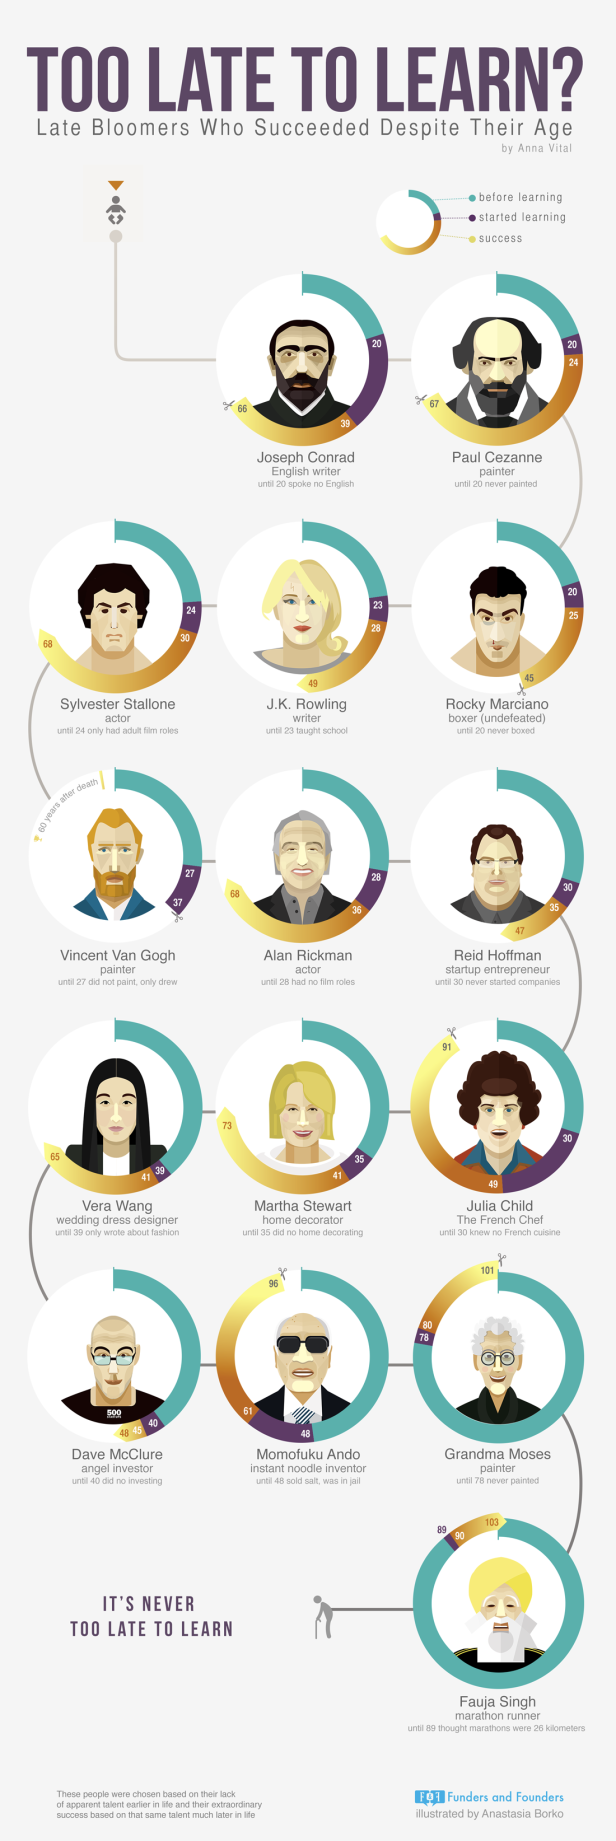 too-late-to-learn-late-bloomers-people-who-succeeded-infographic